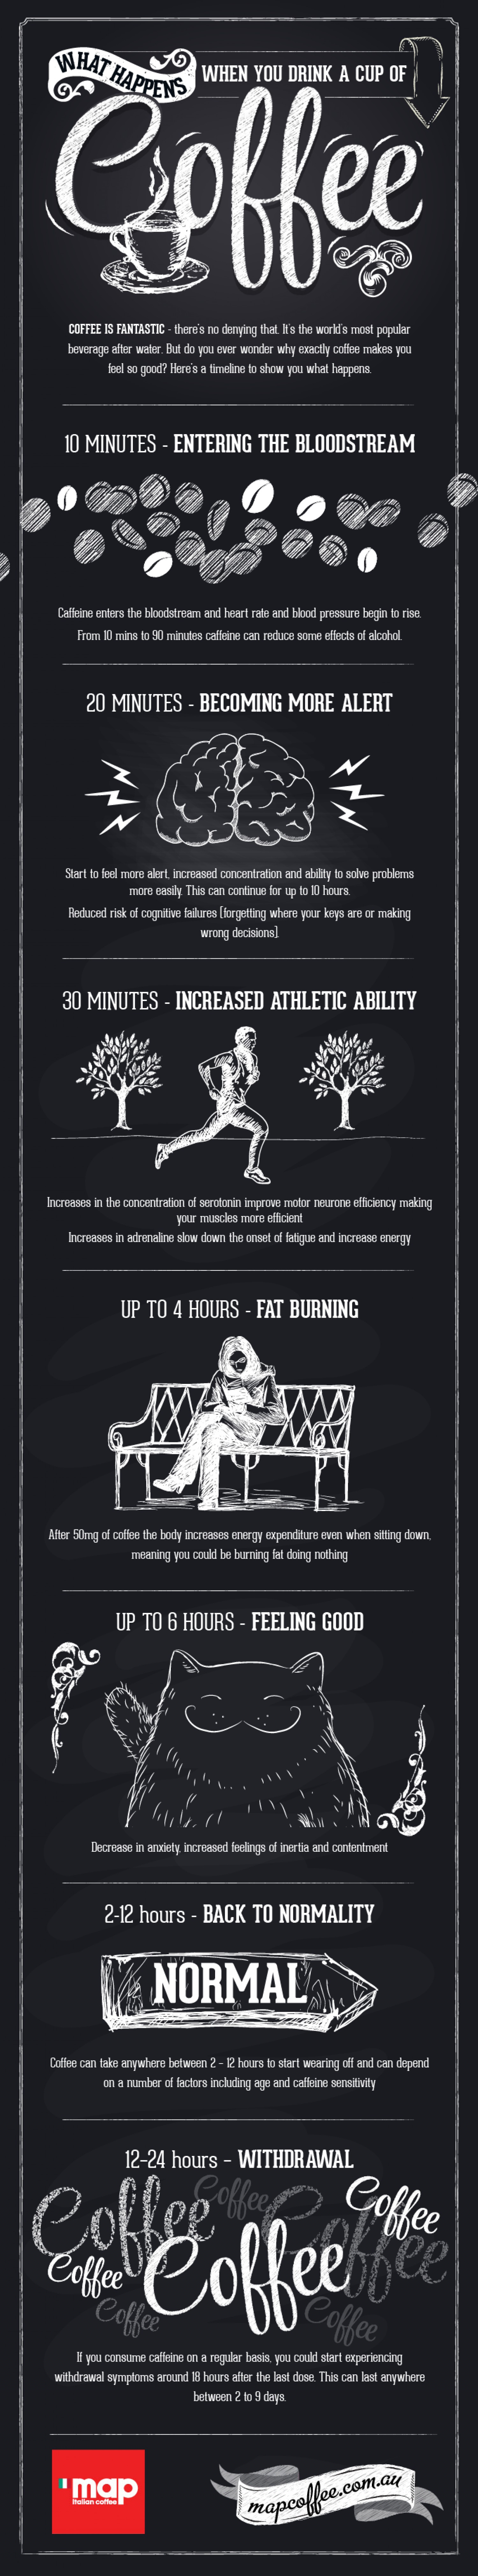 A novel explanation of what happens when you drink a cup of coffee. Photo Credit: MapCoffee.com.au